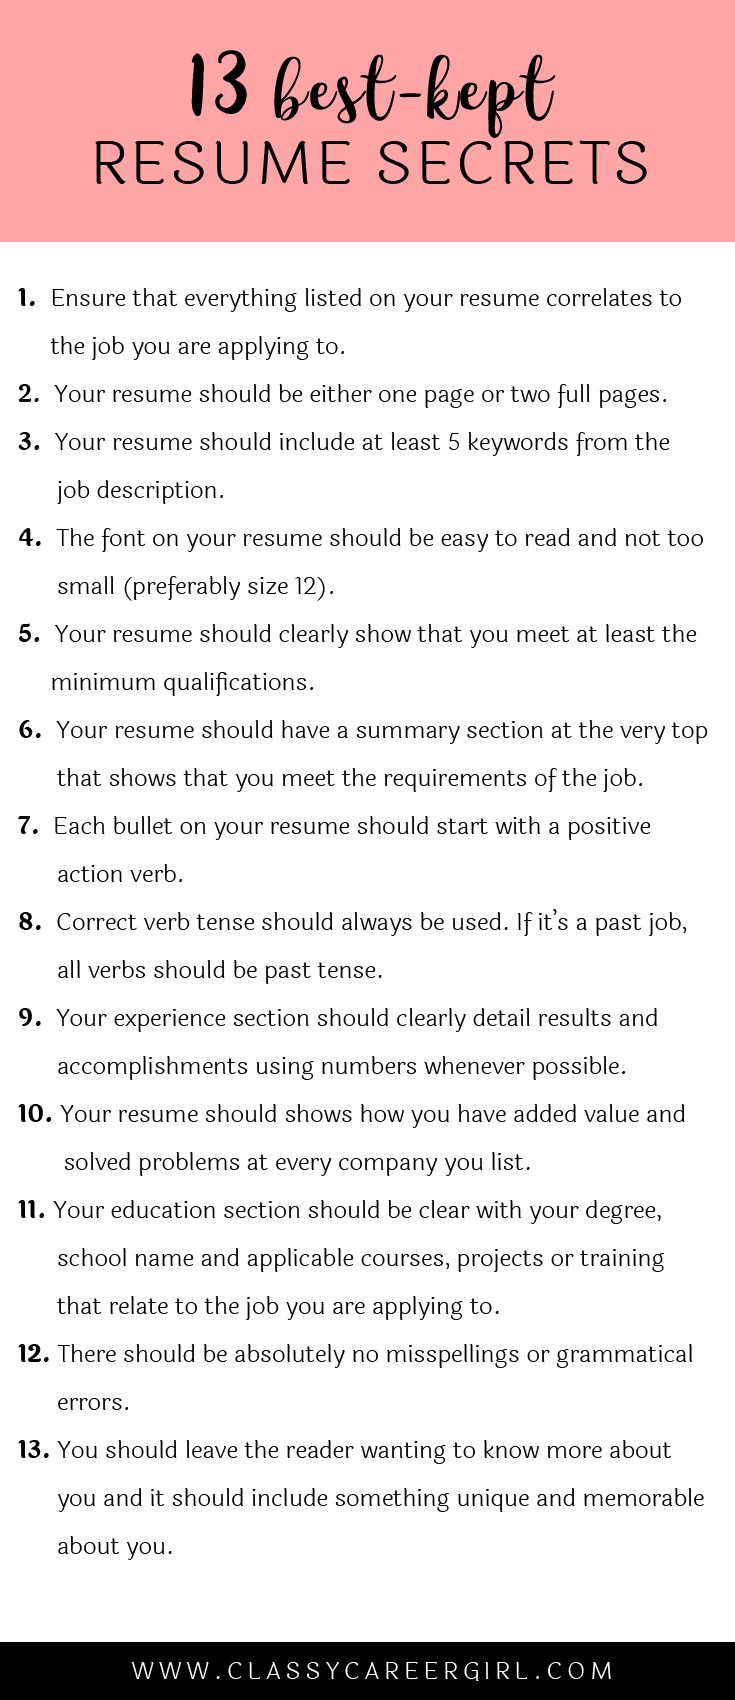 Opposenewapstandardsus  Inspiring  Ideas About Resume On Pinterest  Cv Format Resume Cv And  With Remarkable Some Hiring Managers Will Toss Your Resume Out If You Dont Know These  With Captivating Cover Letters For Resumes Sample Also Resumes For Retail In Addition Resume Objective Section And Phd Student Resume As Well As Accounting Sample Resume Additionally Creative Graphic Design Resumes From Pinterestcom With Opposenewapstandardsus  Remarkable  Ideas About Resume On Pinterest  Cv Format Resume Cv And  With Captivating Some Hiring Managers Will Toss Your Resume Out If You Dont Know These  And Inspiring Cover Letters For Resumes Sample Also Resumes For Retail In Addition Resume Objective Section From Pinterestcom